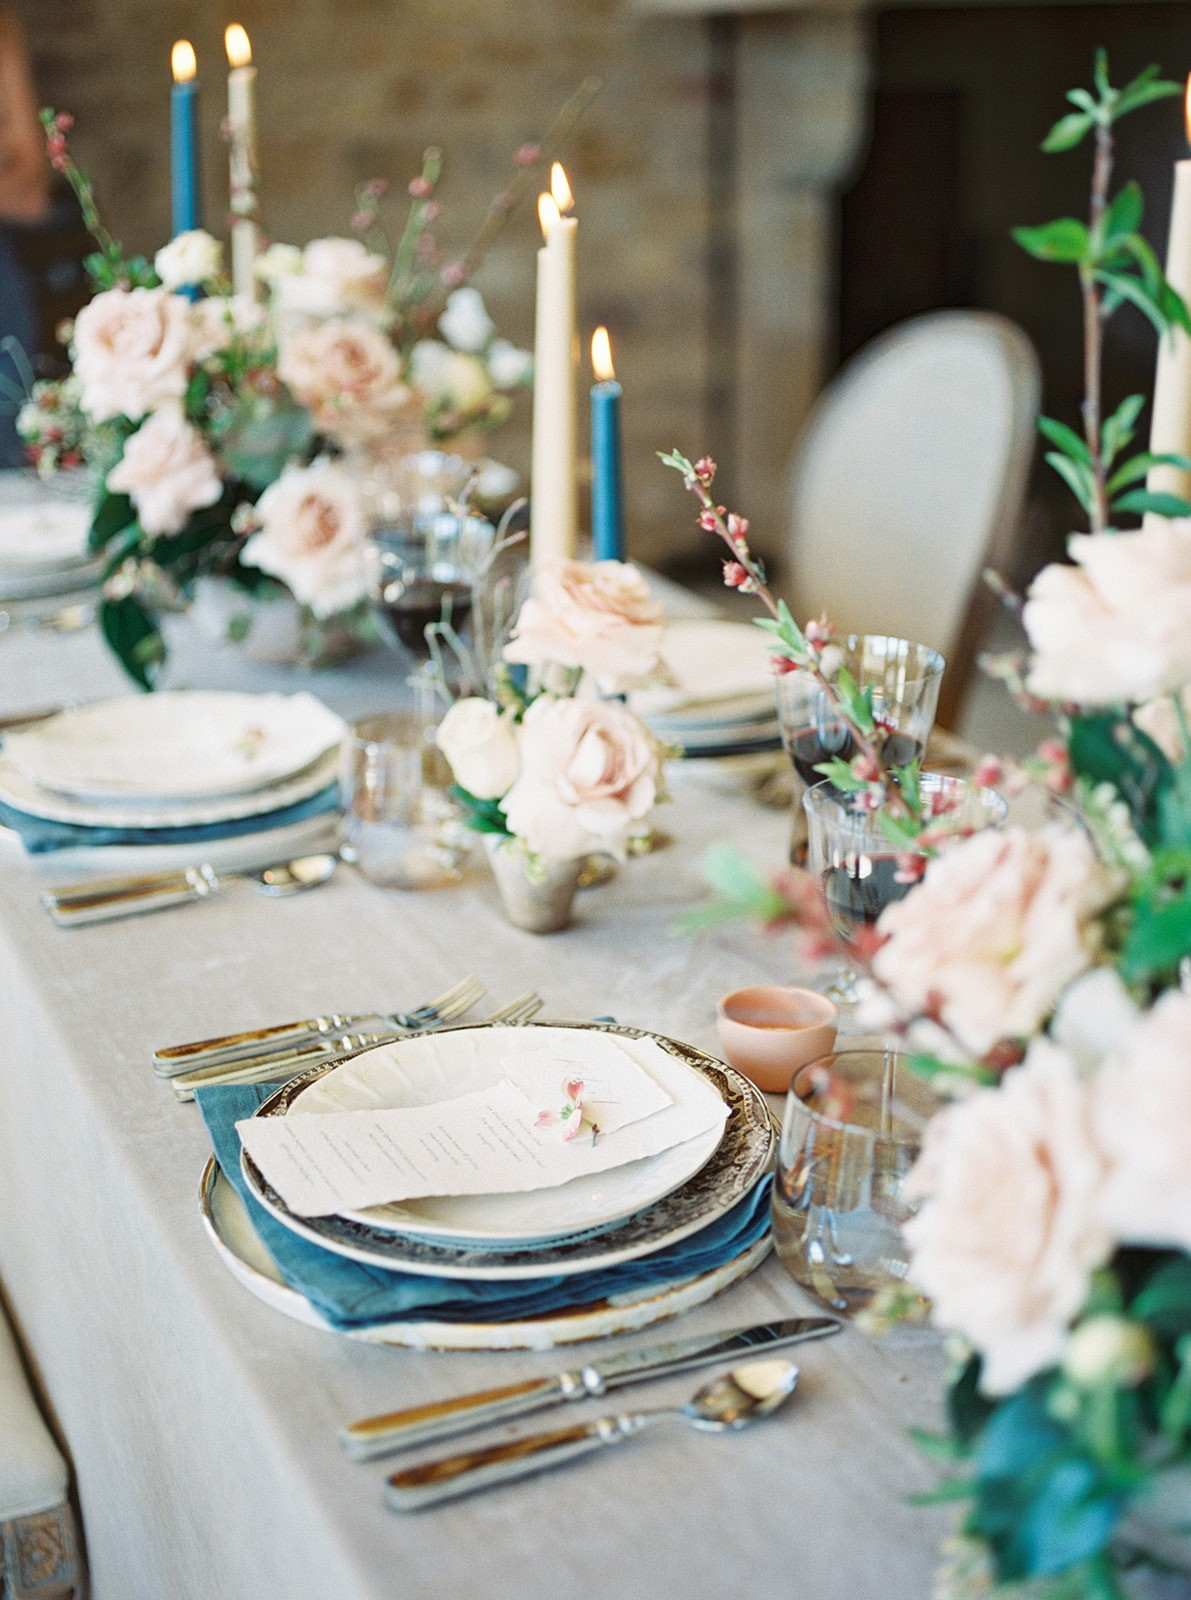 Floral tablescape with teal details, by Lianna Marie